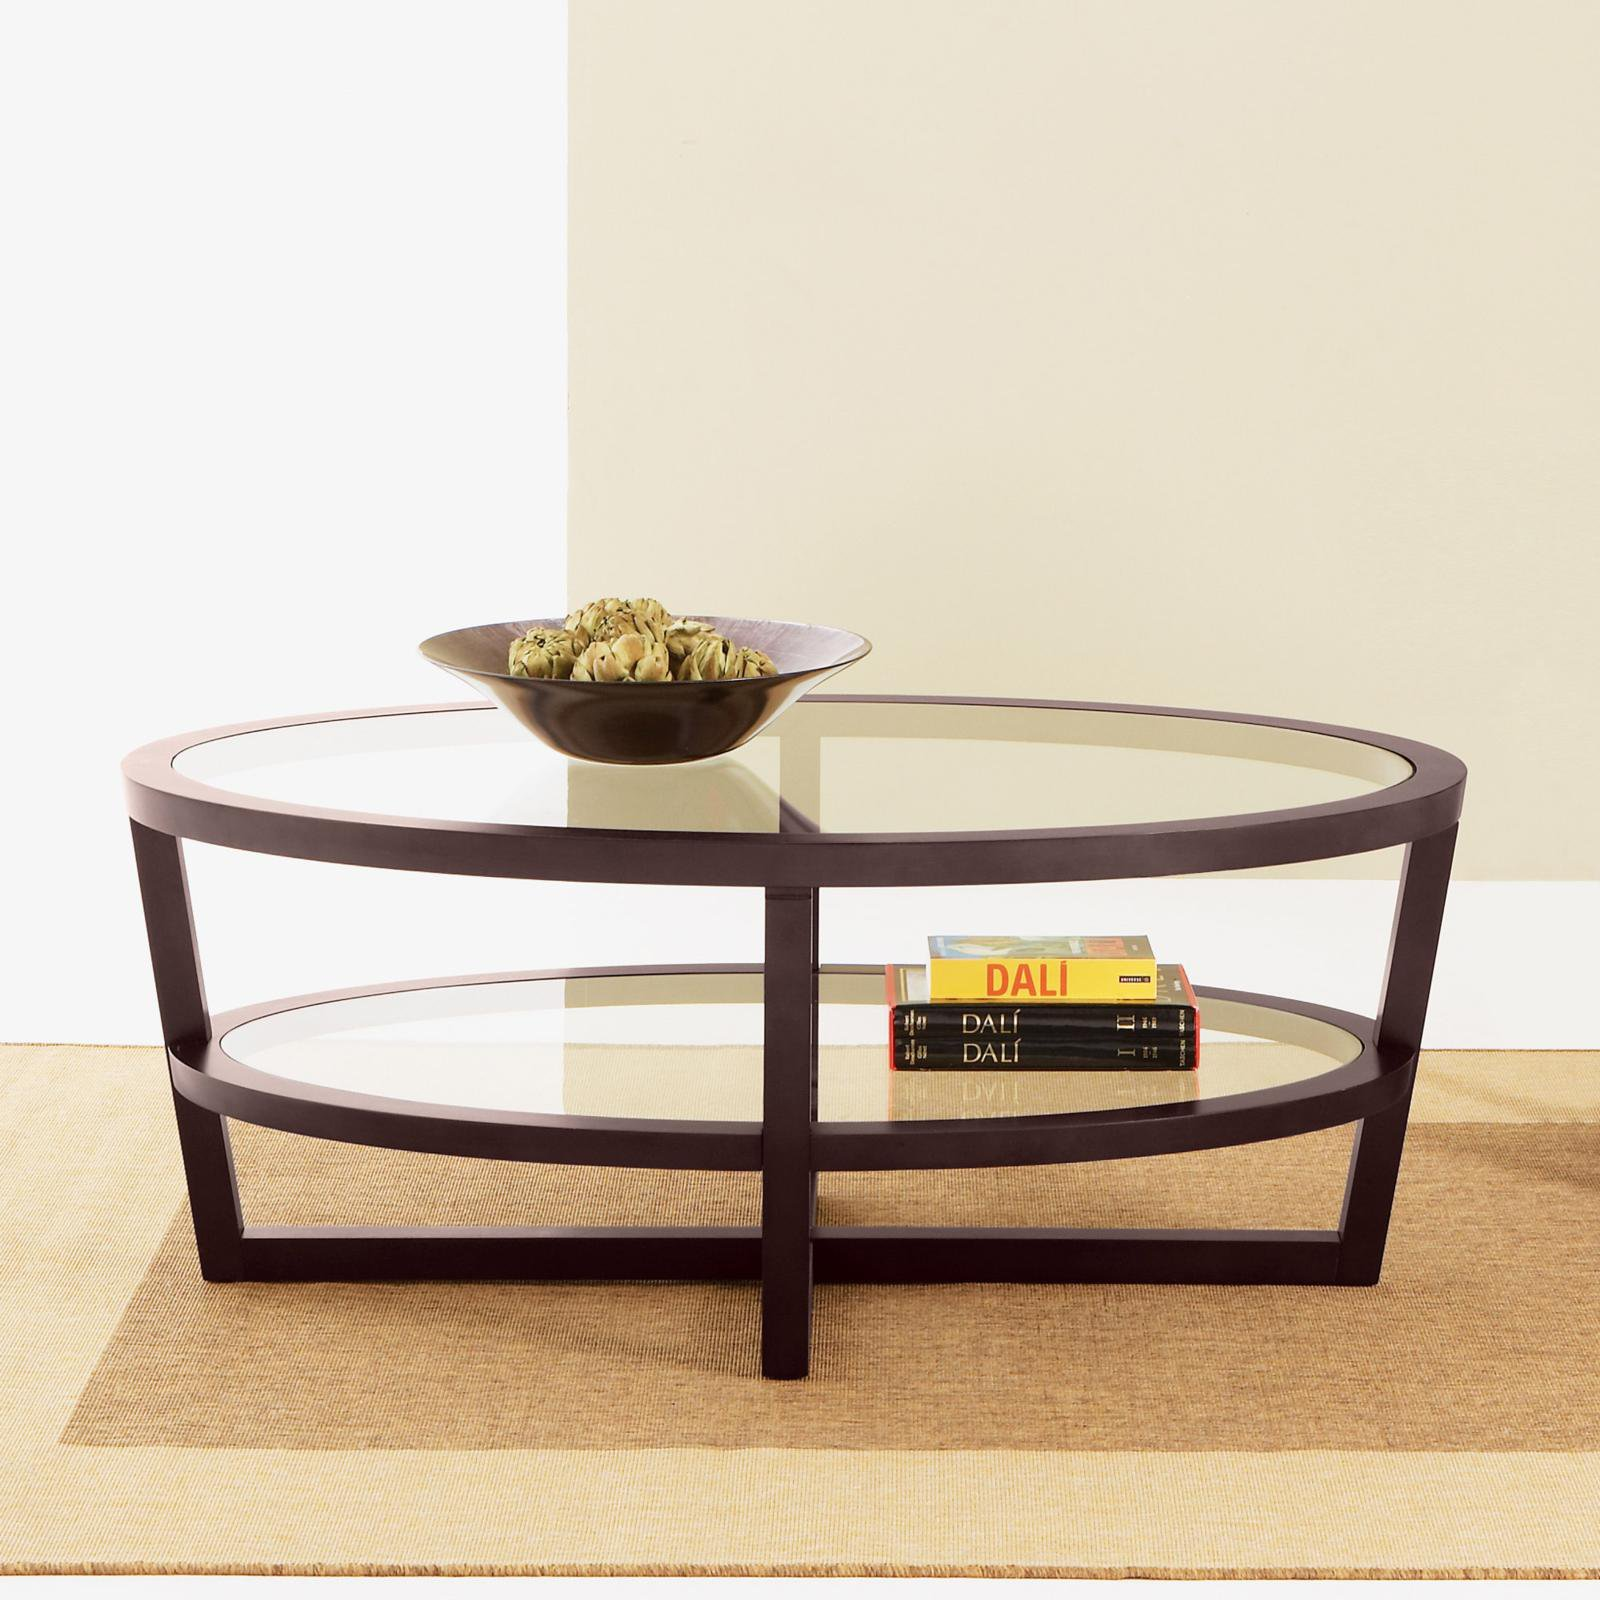 build oval wood coffee table cole papers design amazing berwyn end metal and rustic brown threshold dog crate adjustable mid century modern furniture legs gaming dining small